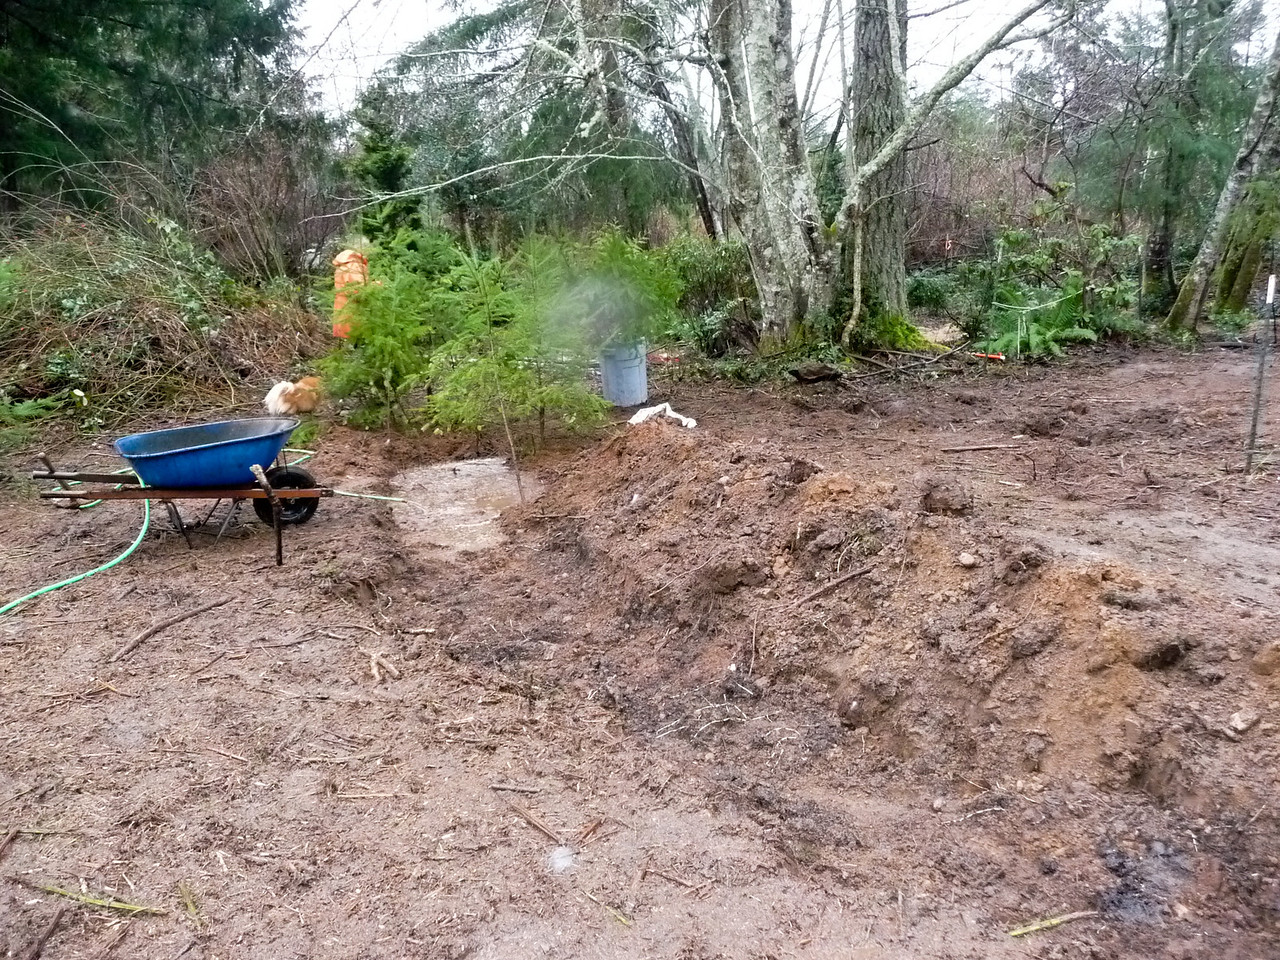 Feb 2012 I dug this trench for the fir trees taken from a Nurse Log.  I lined the trench with irrigation hose.  These will have to be thinned (transplanted) some day.